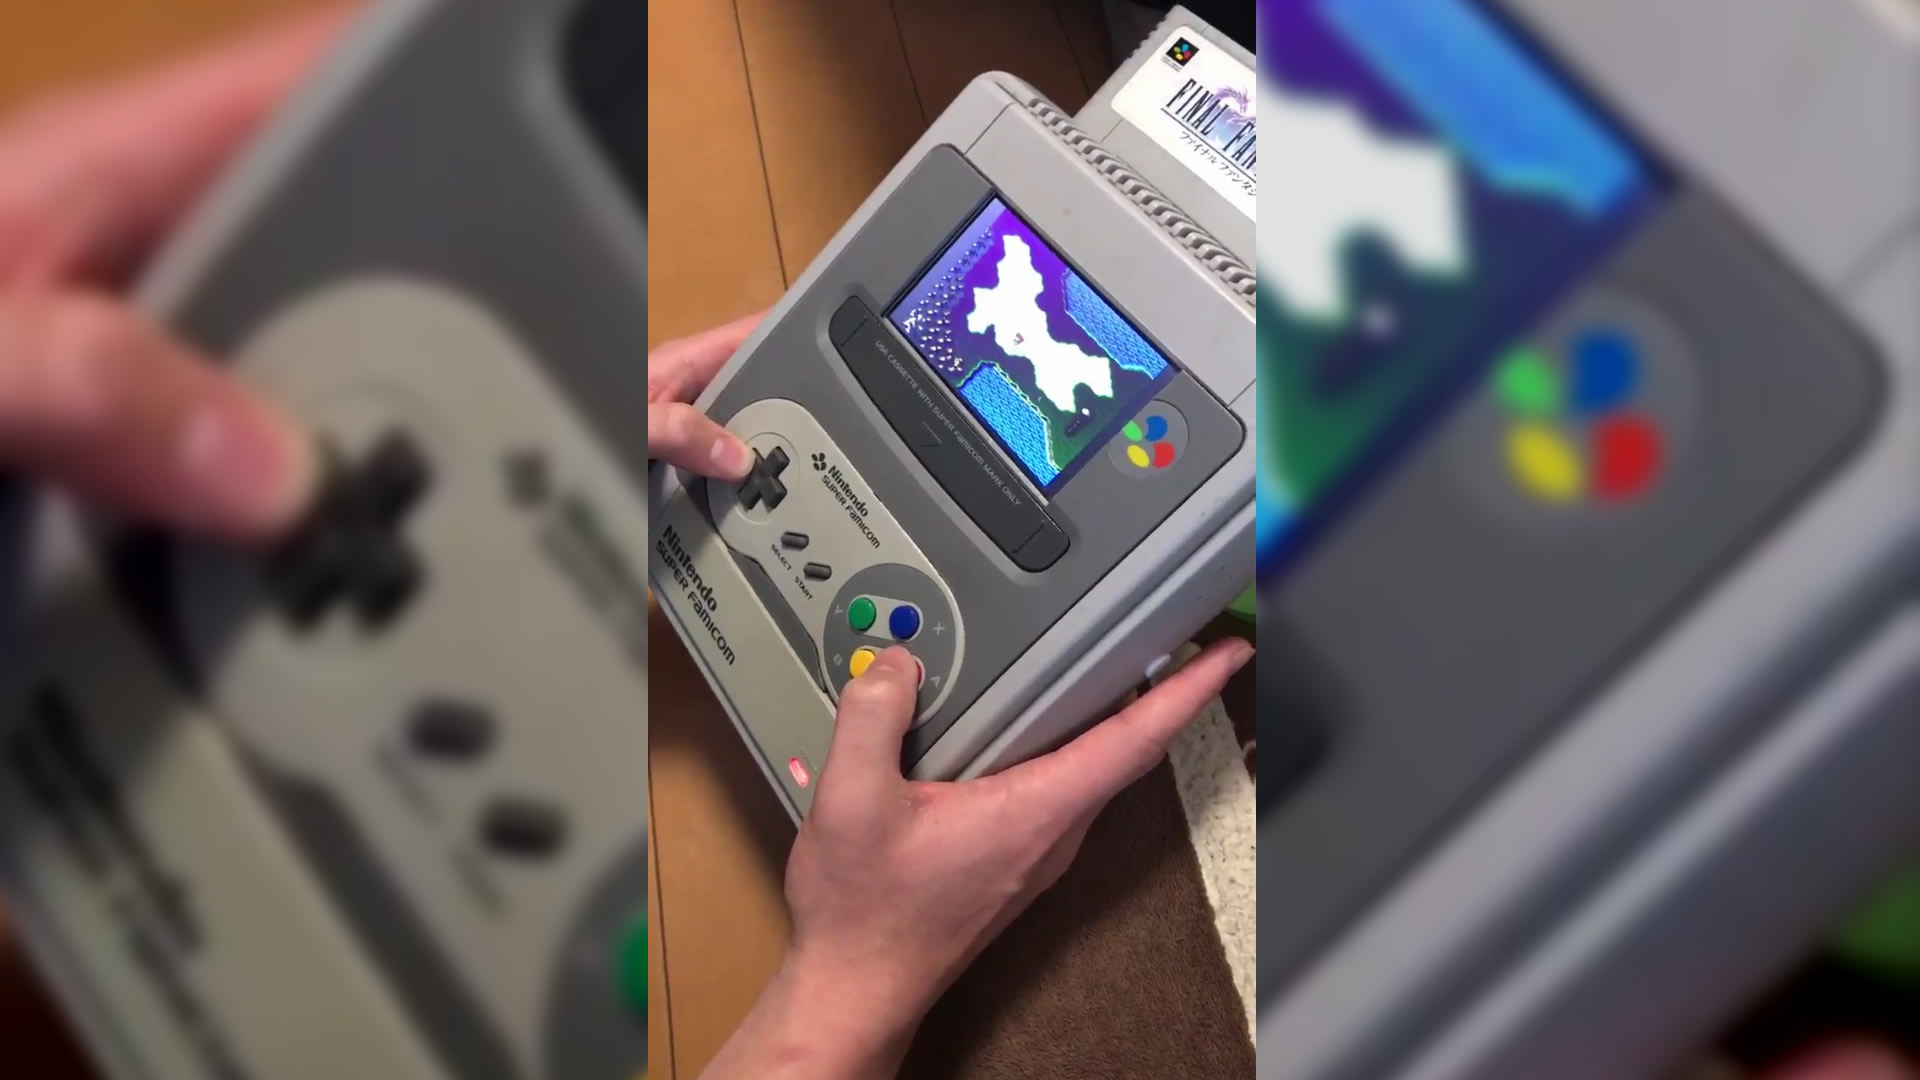 Modojo | Could This Be The Coolest Super Nintendo Mod Ever?